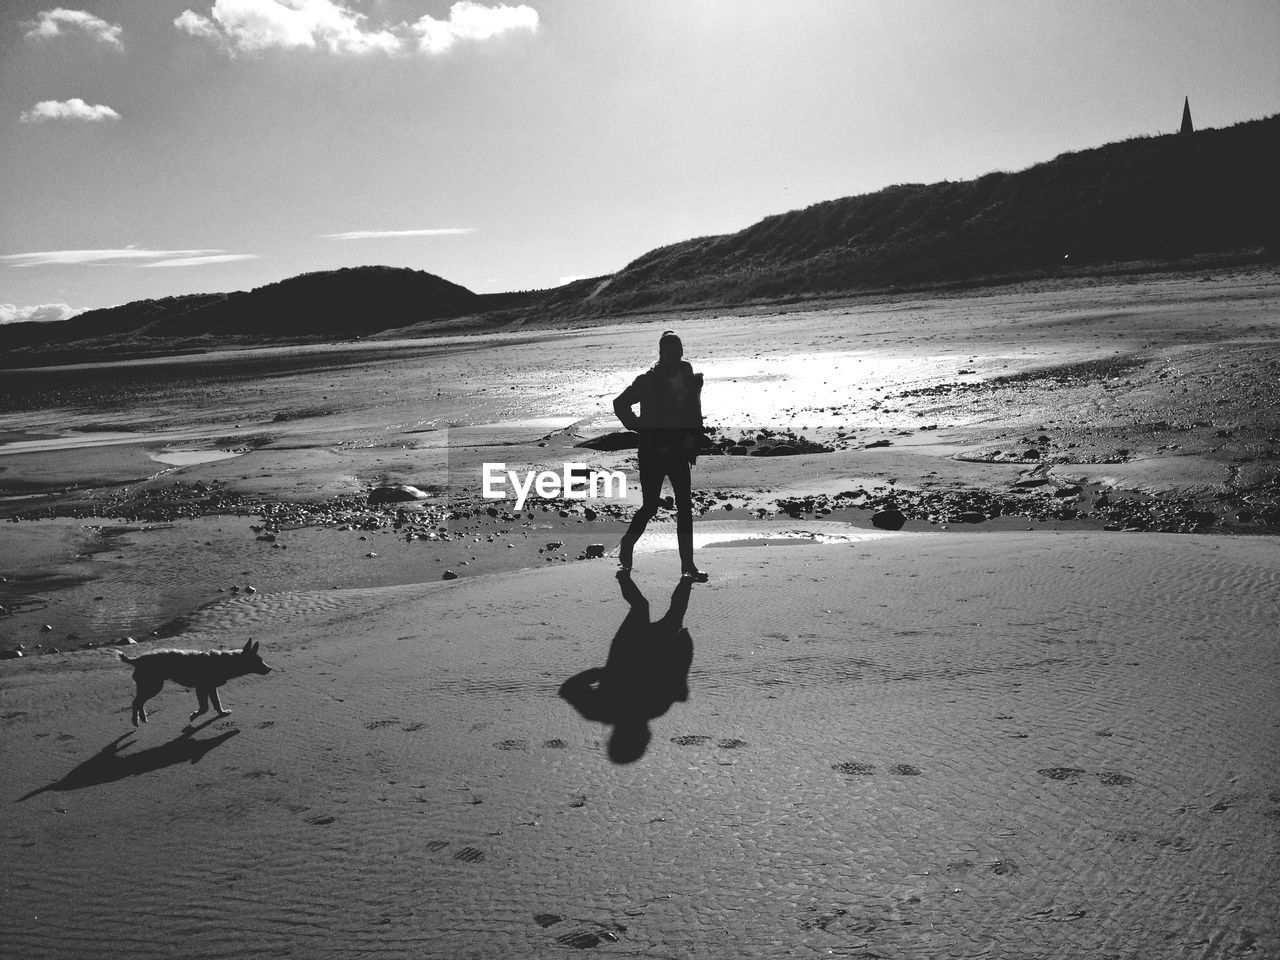 beach, real people, sea, sand, shore, one person, nature, full length, leisure activity, men, walking, day, lifestyles, water, sky, vacations, outdoors, adventure, standing, scenics, shadow, mountain, extreme sports, beauty in nature, wave, horizon over water, one man only, people